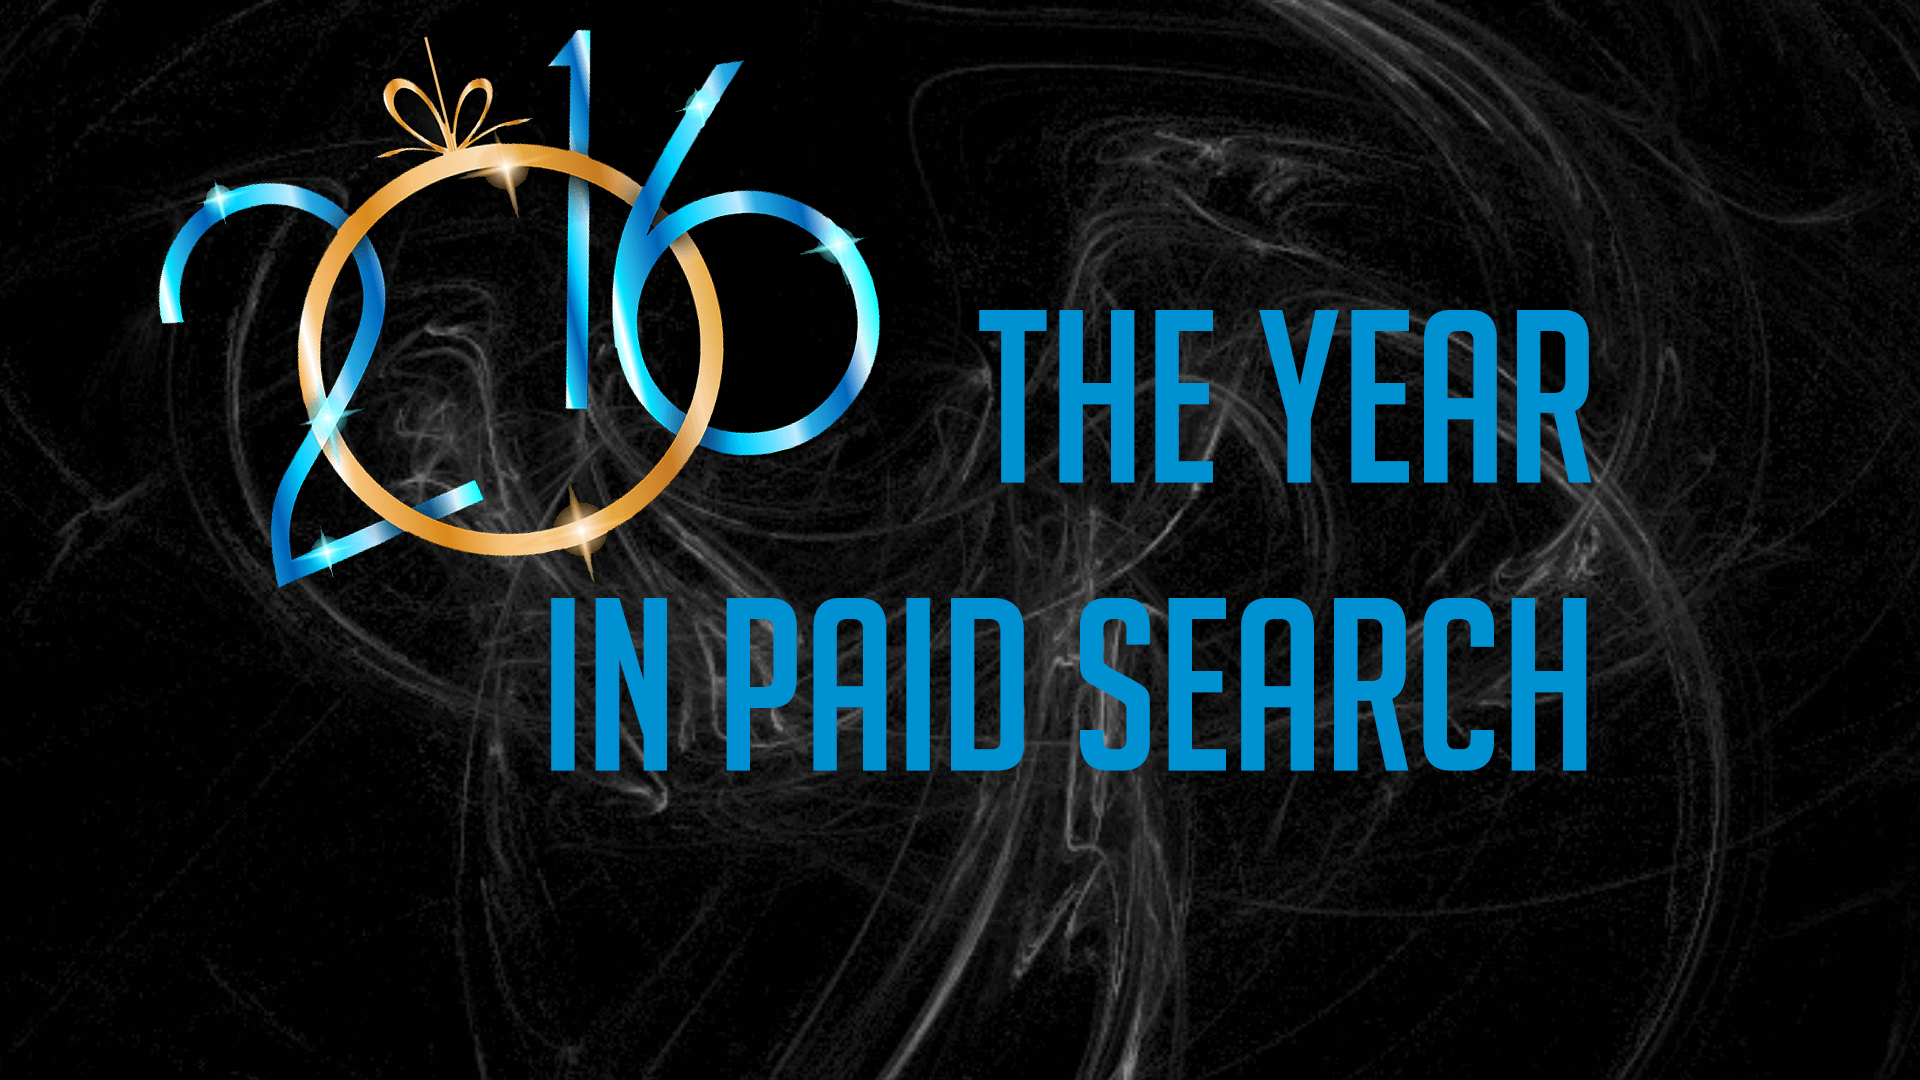 2016-year-in-pago-search-ss-1920